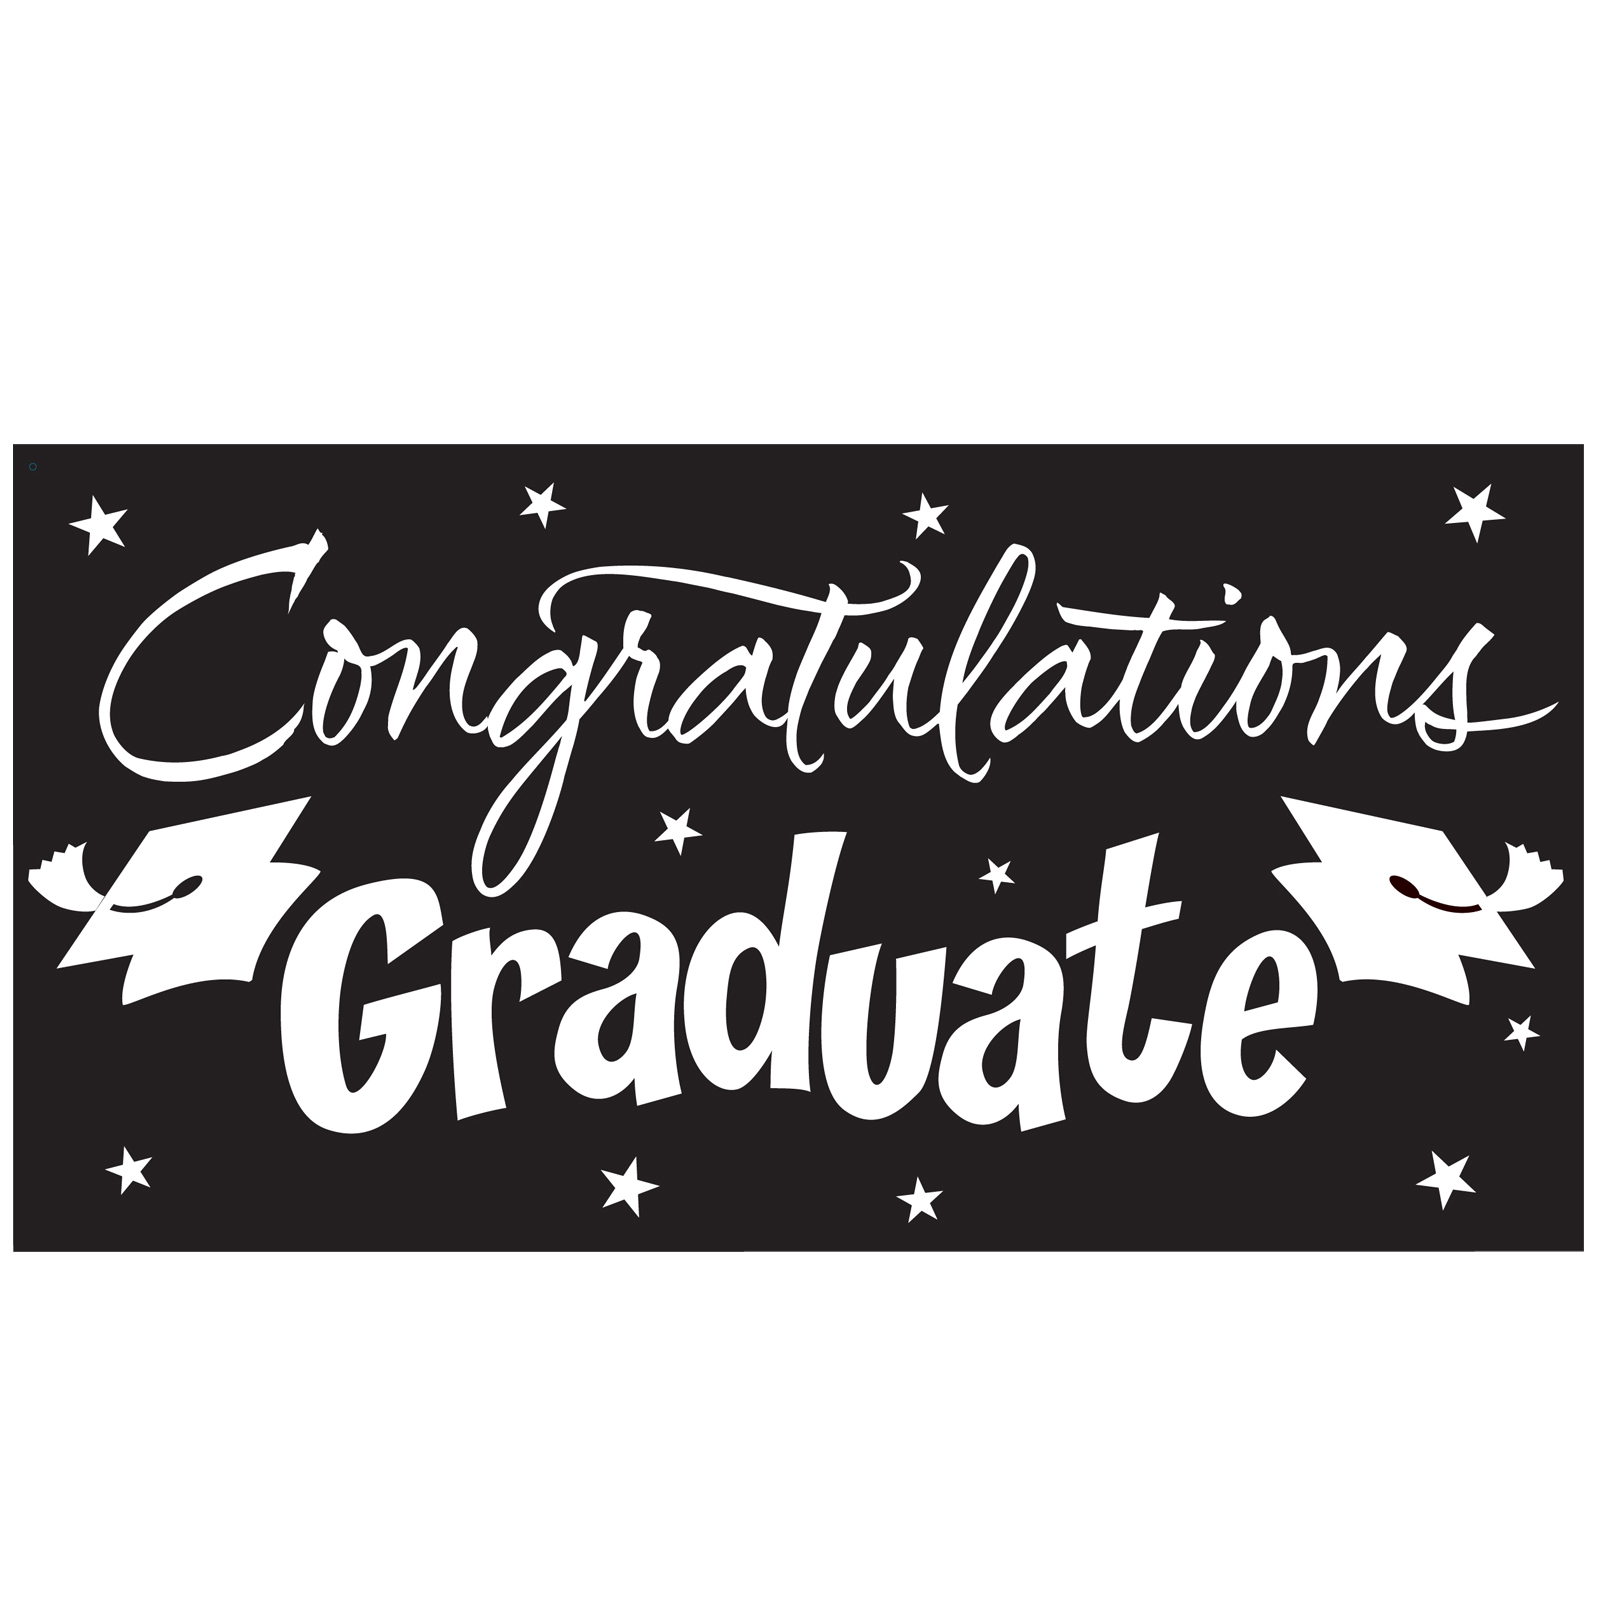 Congratulations sign clipart svg library download Free Graduation Banner Cliparts, Download Free Clip Art, Free Clip ... svg library download